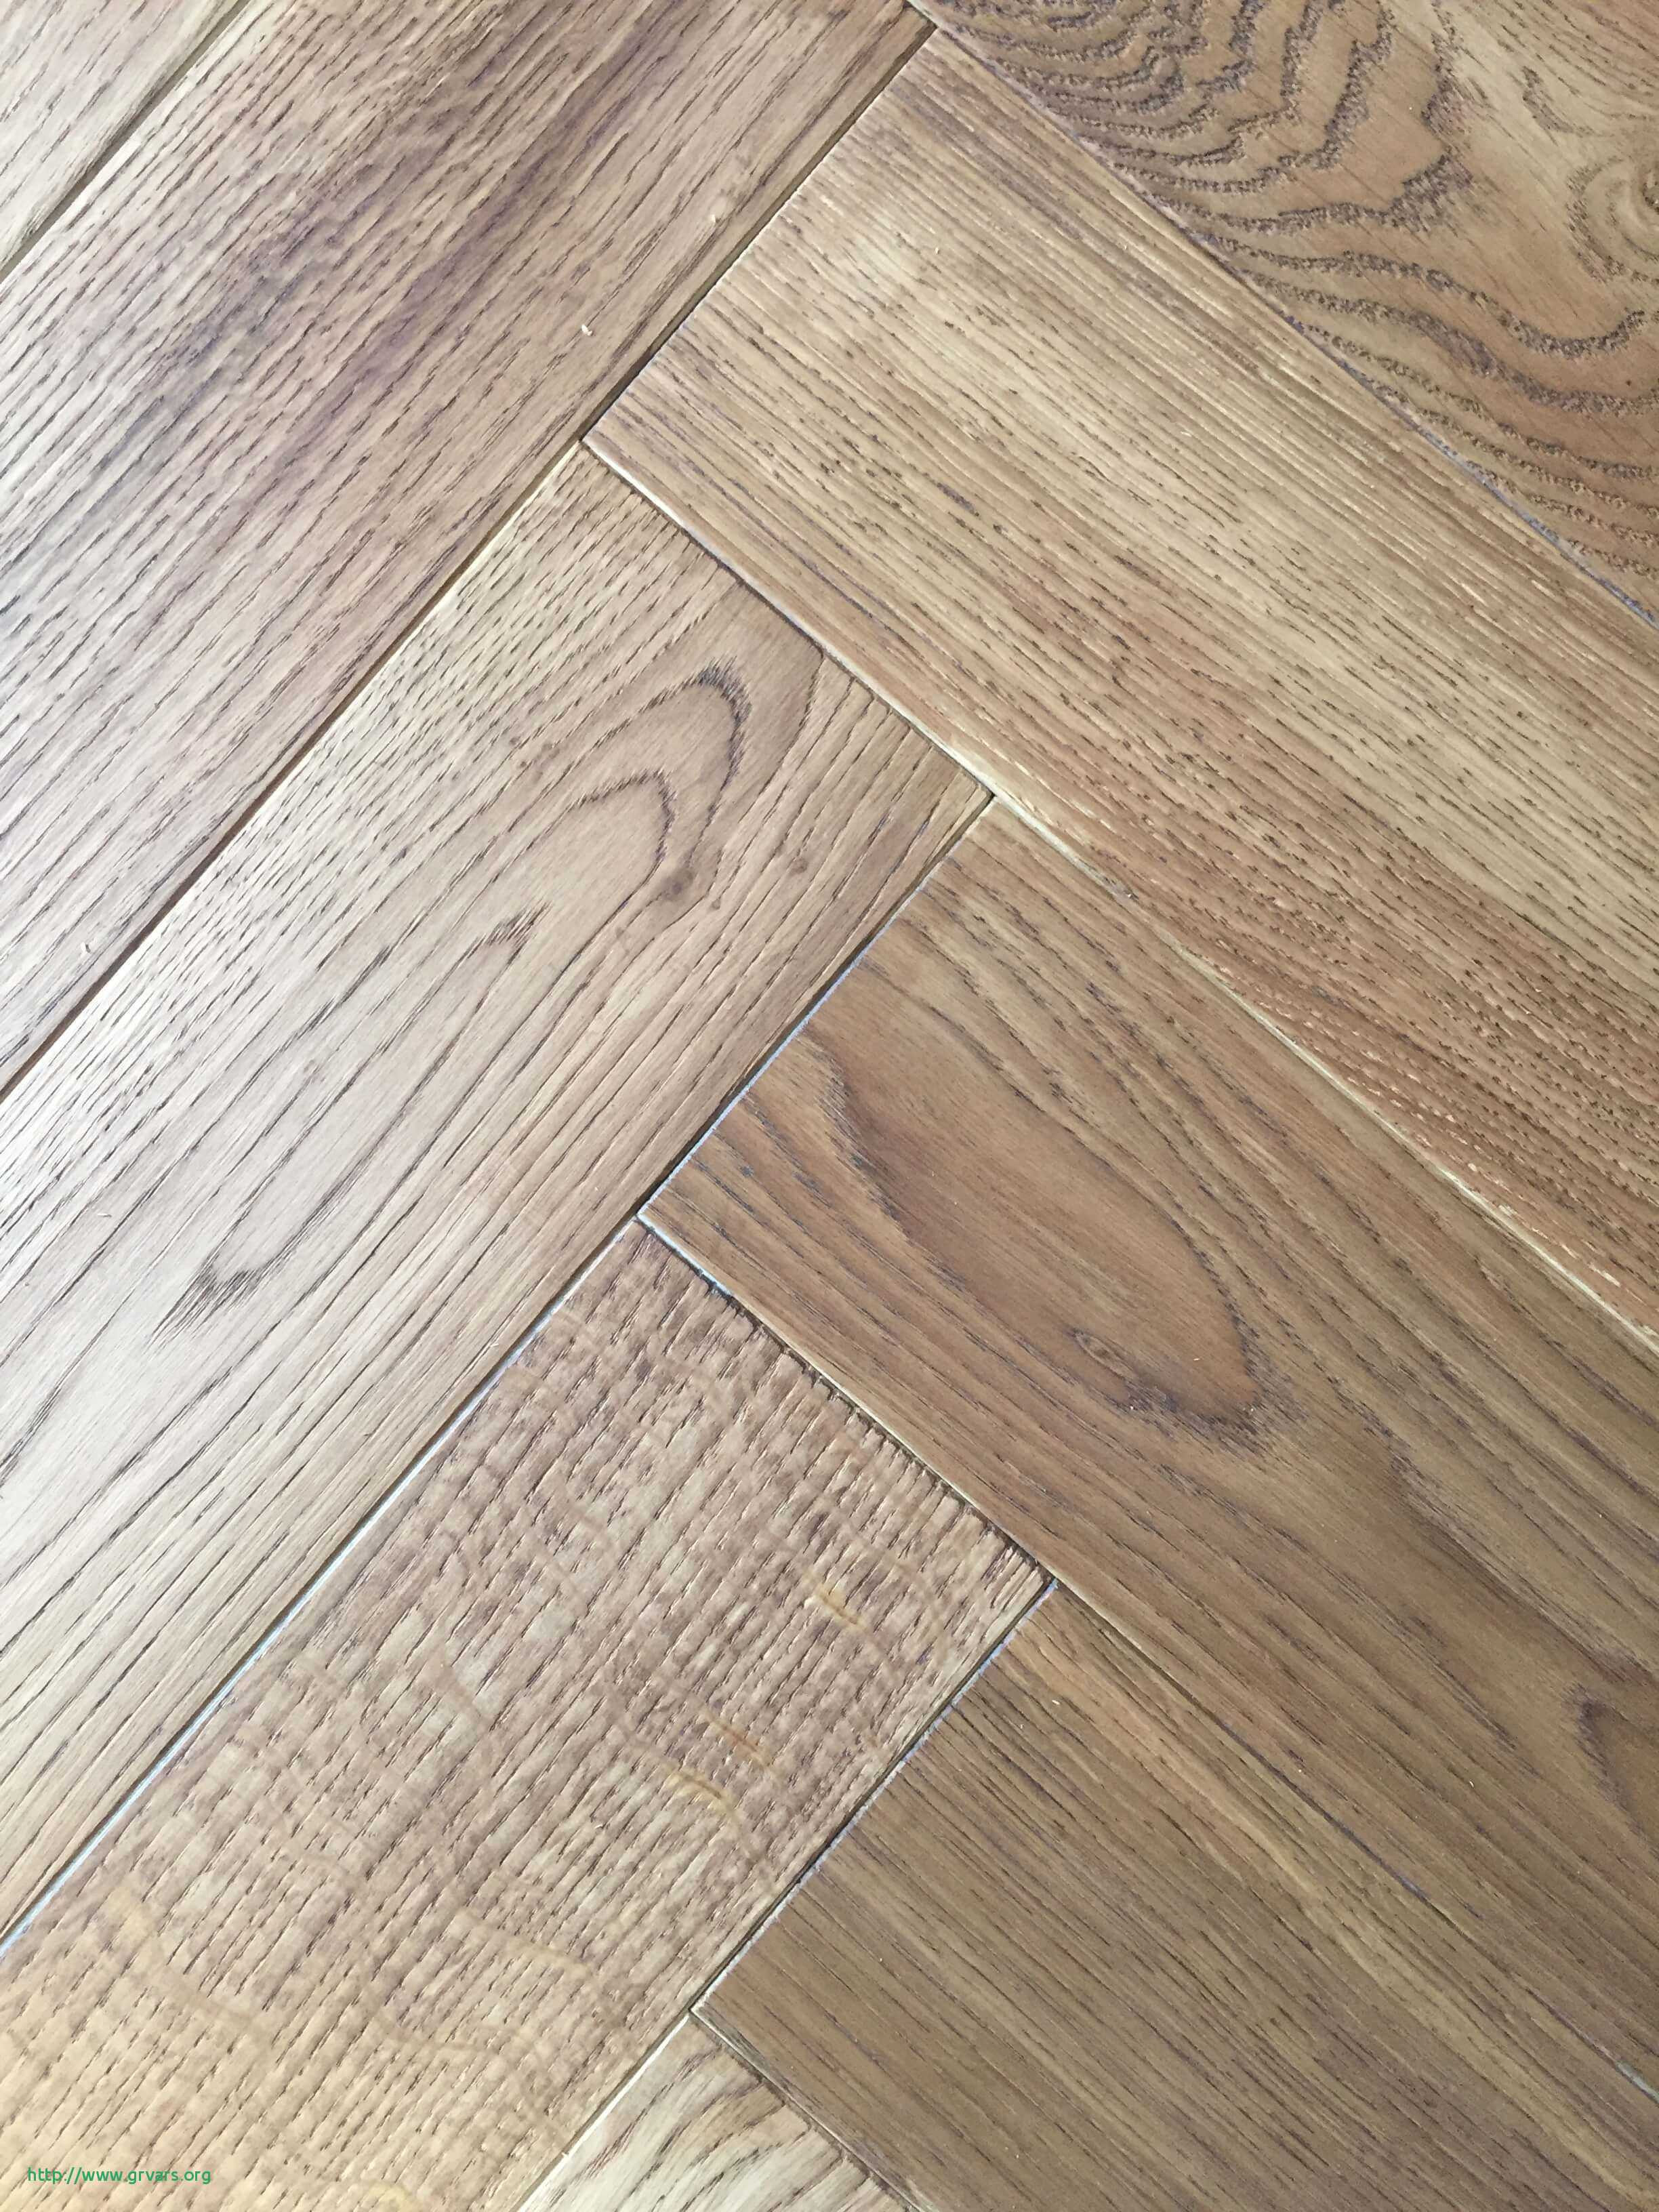 how to install the hardwood floor by yourself of 21 unique pattern for laying hardwood flooring ideas blog in laying laminate flooring new decorating an open floor plan living room awesome design plan 0d